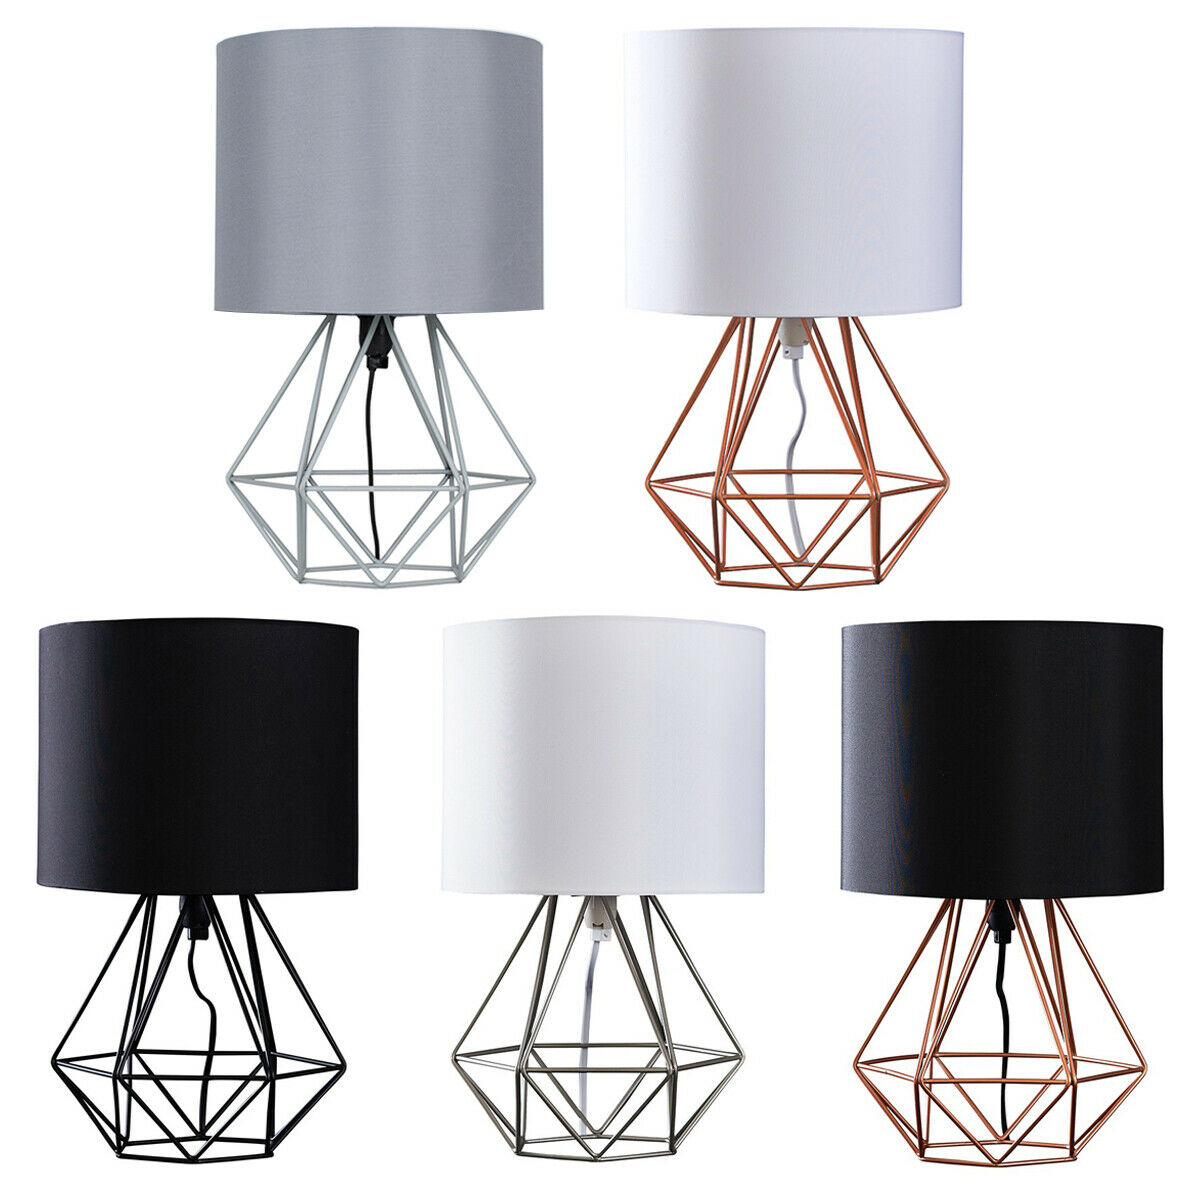 Geometric retro style wire cage table lamps bedside lights copper 1 of 1free shipping greentooth Gallery